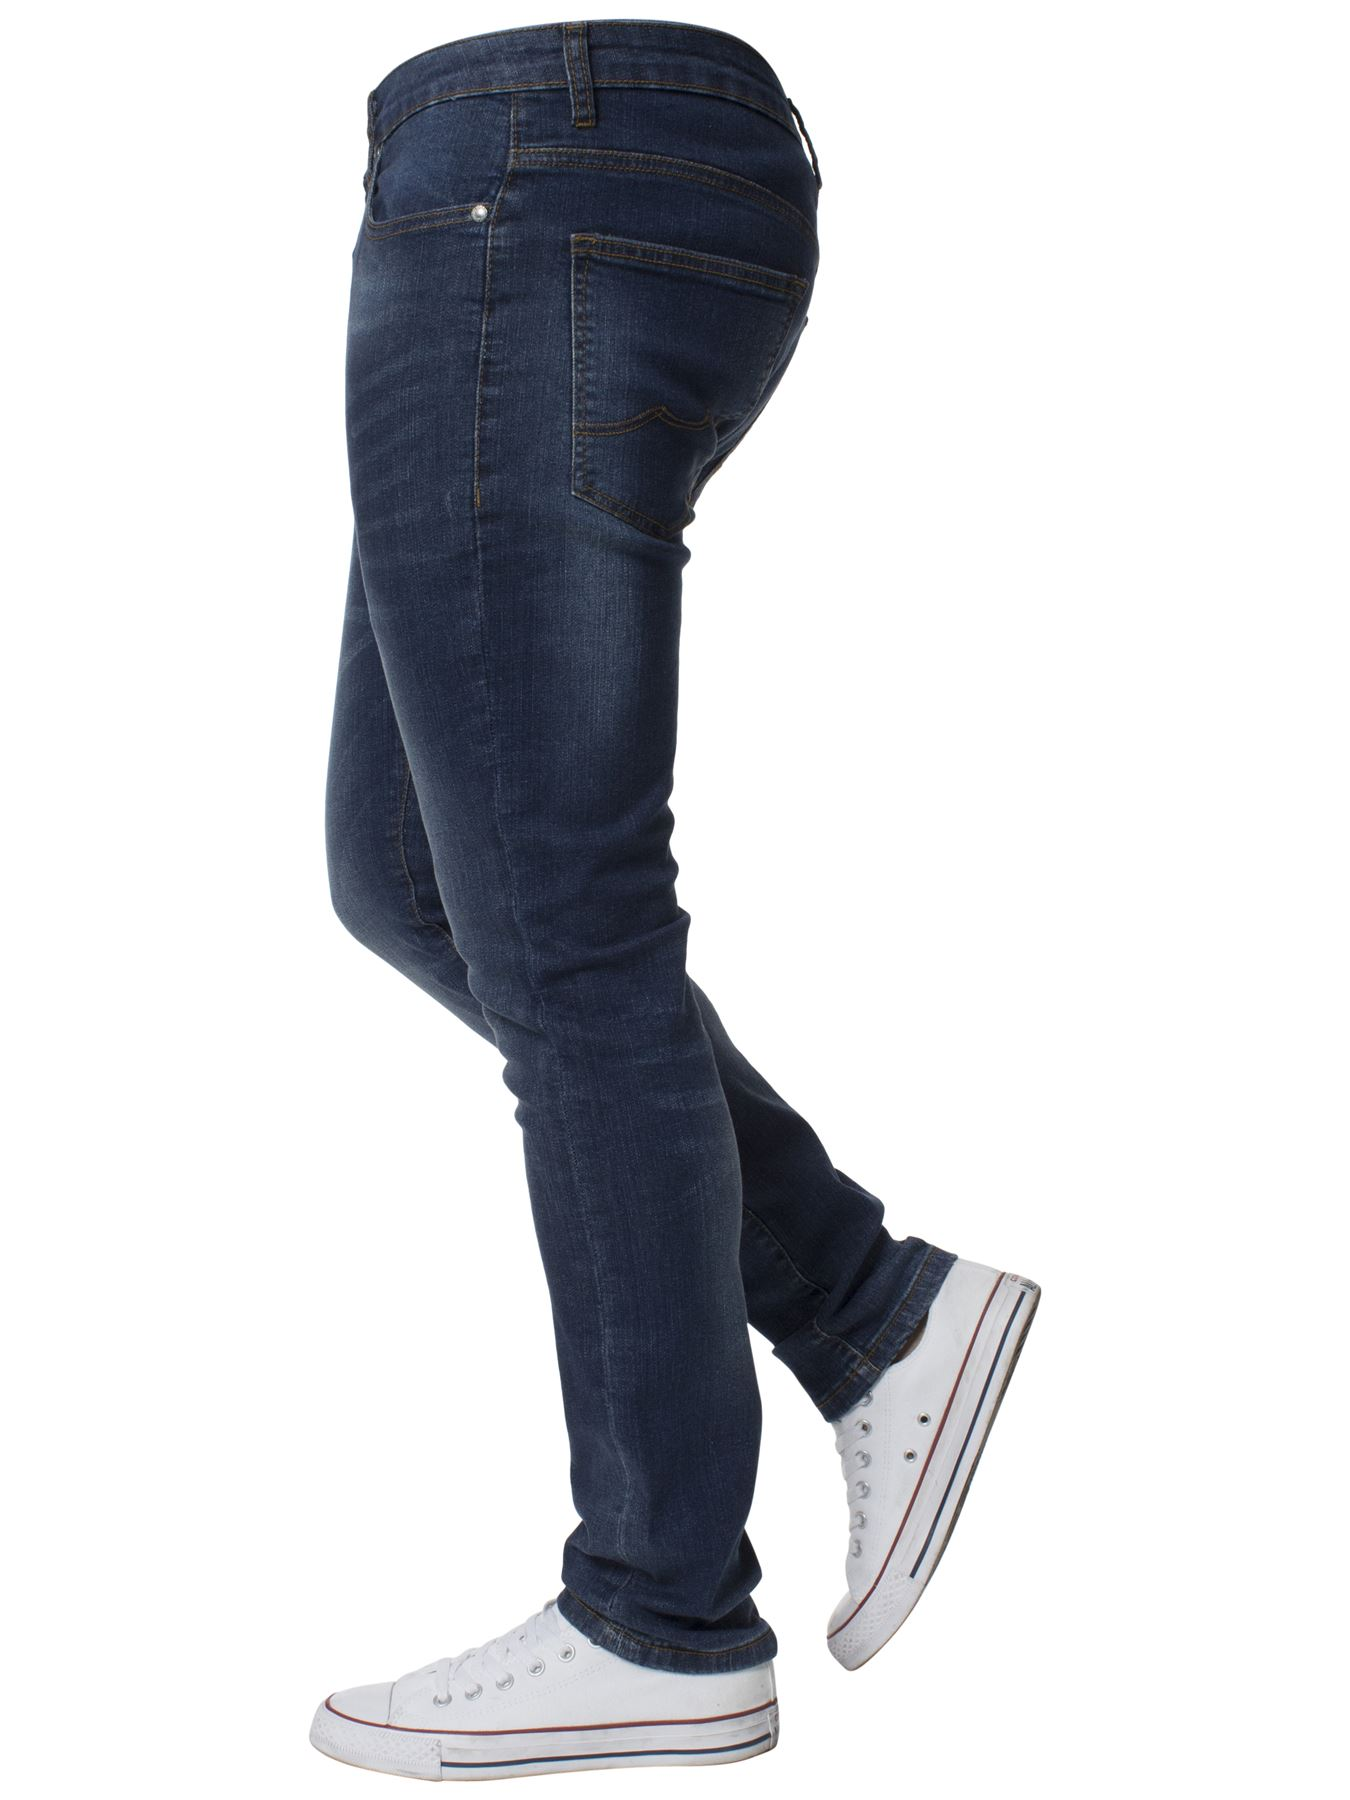 Mens-Skinny-Stretch-Jeans-Slim-Fit-Flex-Denim-Trousers-Pants-King-Sizes-by-Kruze thumbnail 13